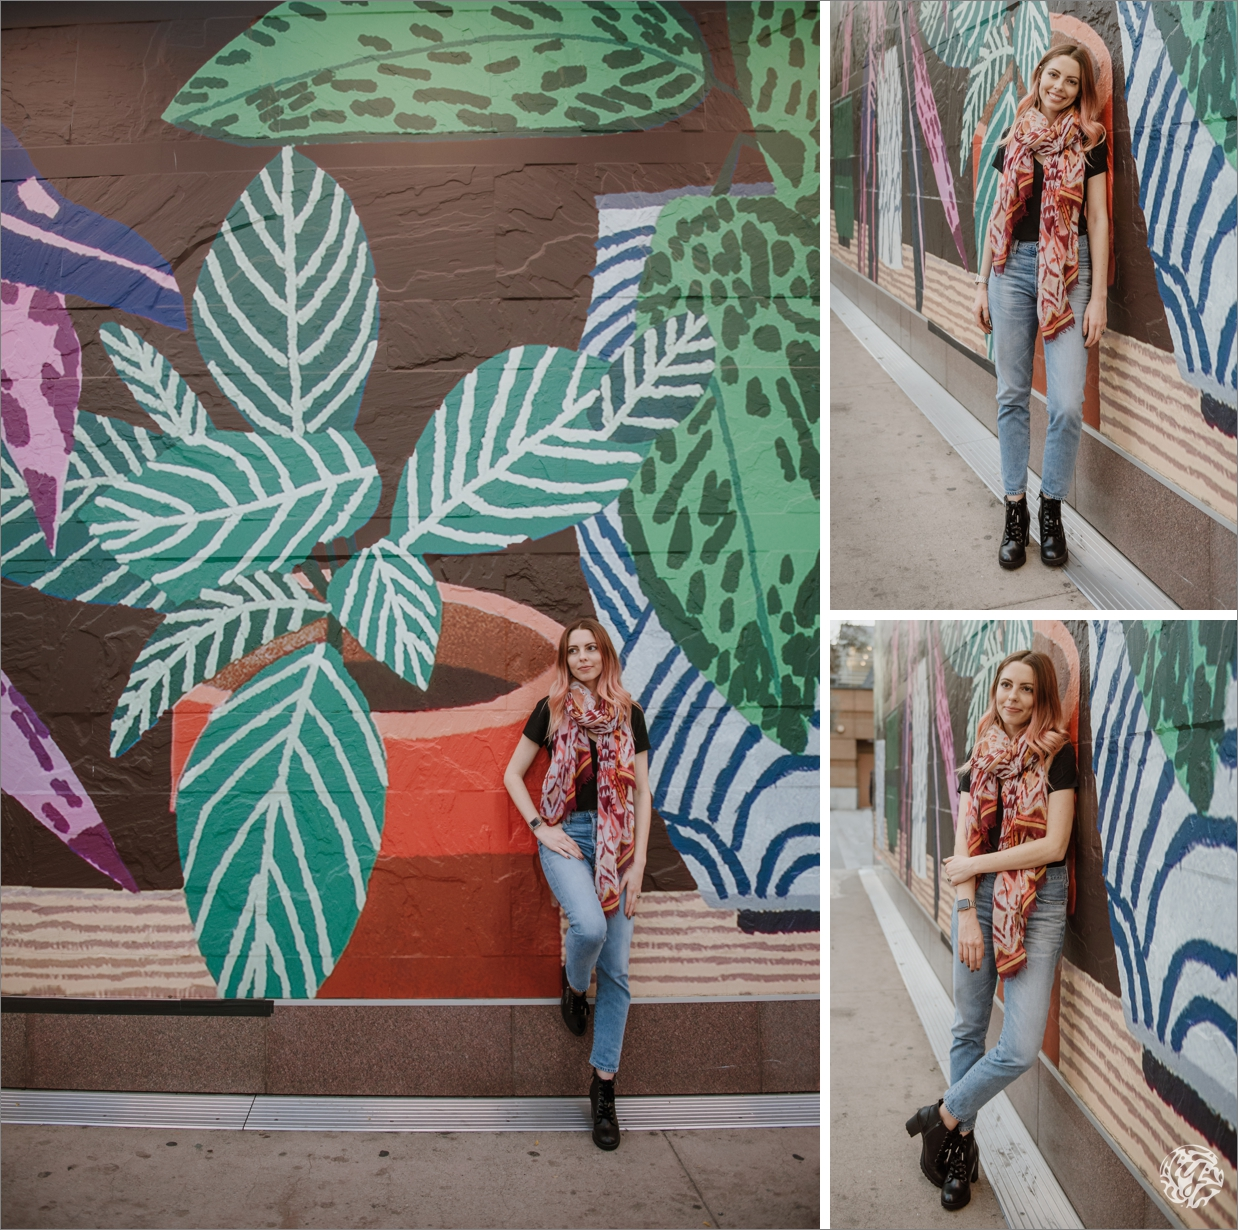 Los Angeles High School Senior Portrait Photographer - Yana's Photos - Los Angeles Graffitti.jpg